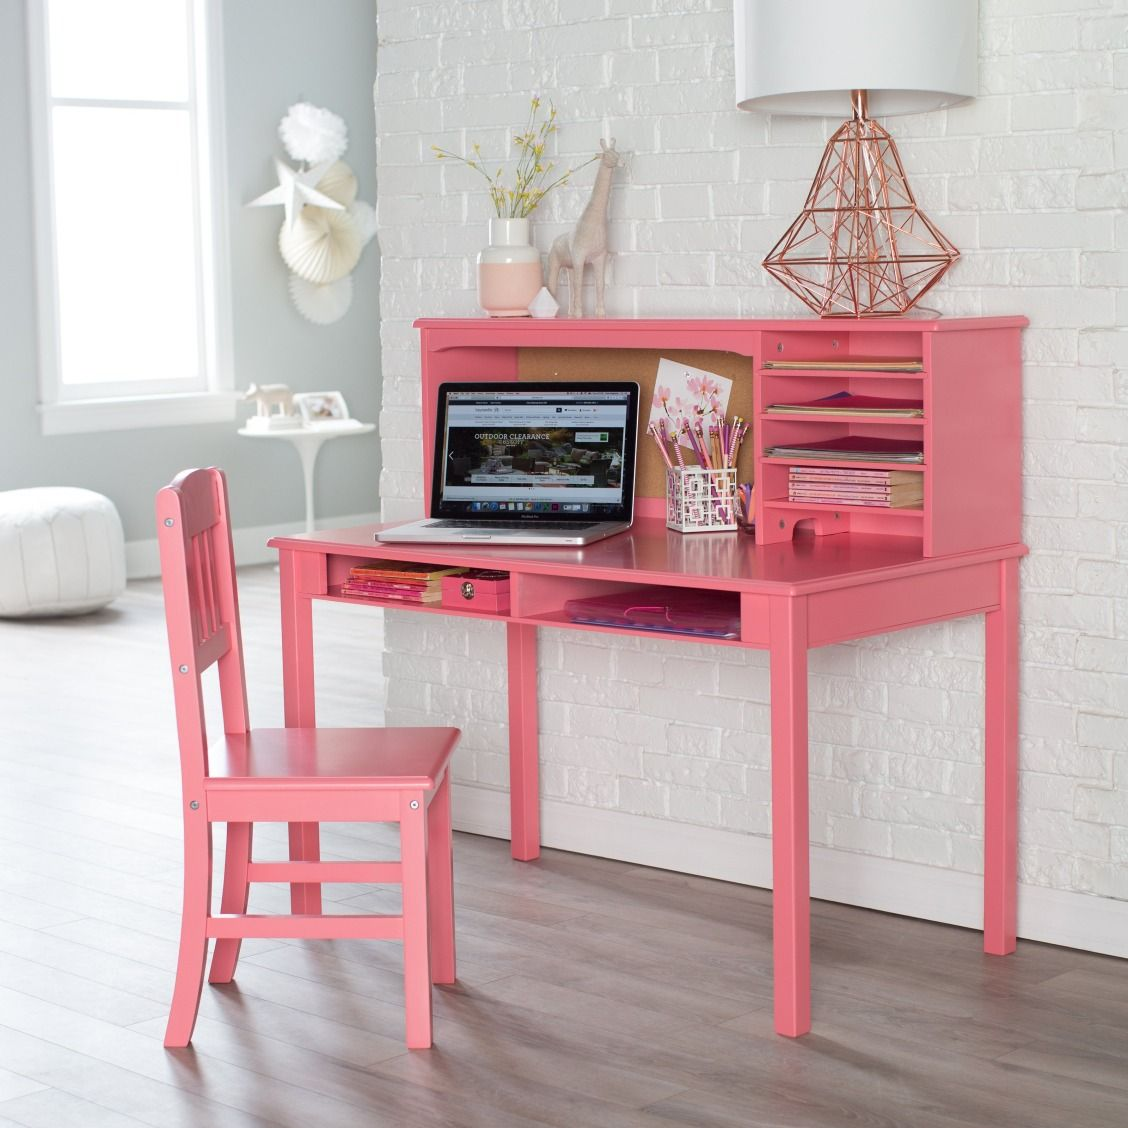 Guidecraft Media Desk u0026 Chair Set - Coral - What a cheeful way to tackle homework! The Guidecraft Media Desk u0026 Chair Set - Coral is cafted from wood and ... & Coral Desk u0026 Chair Set | Gifts for the Kids | Pinterest | Desks and ...